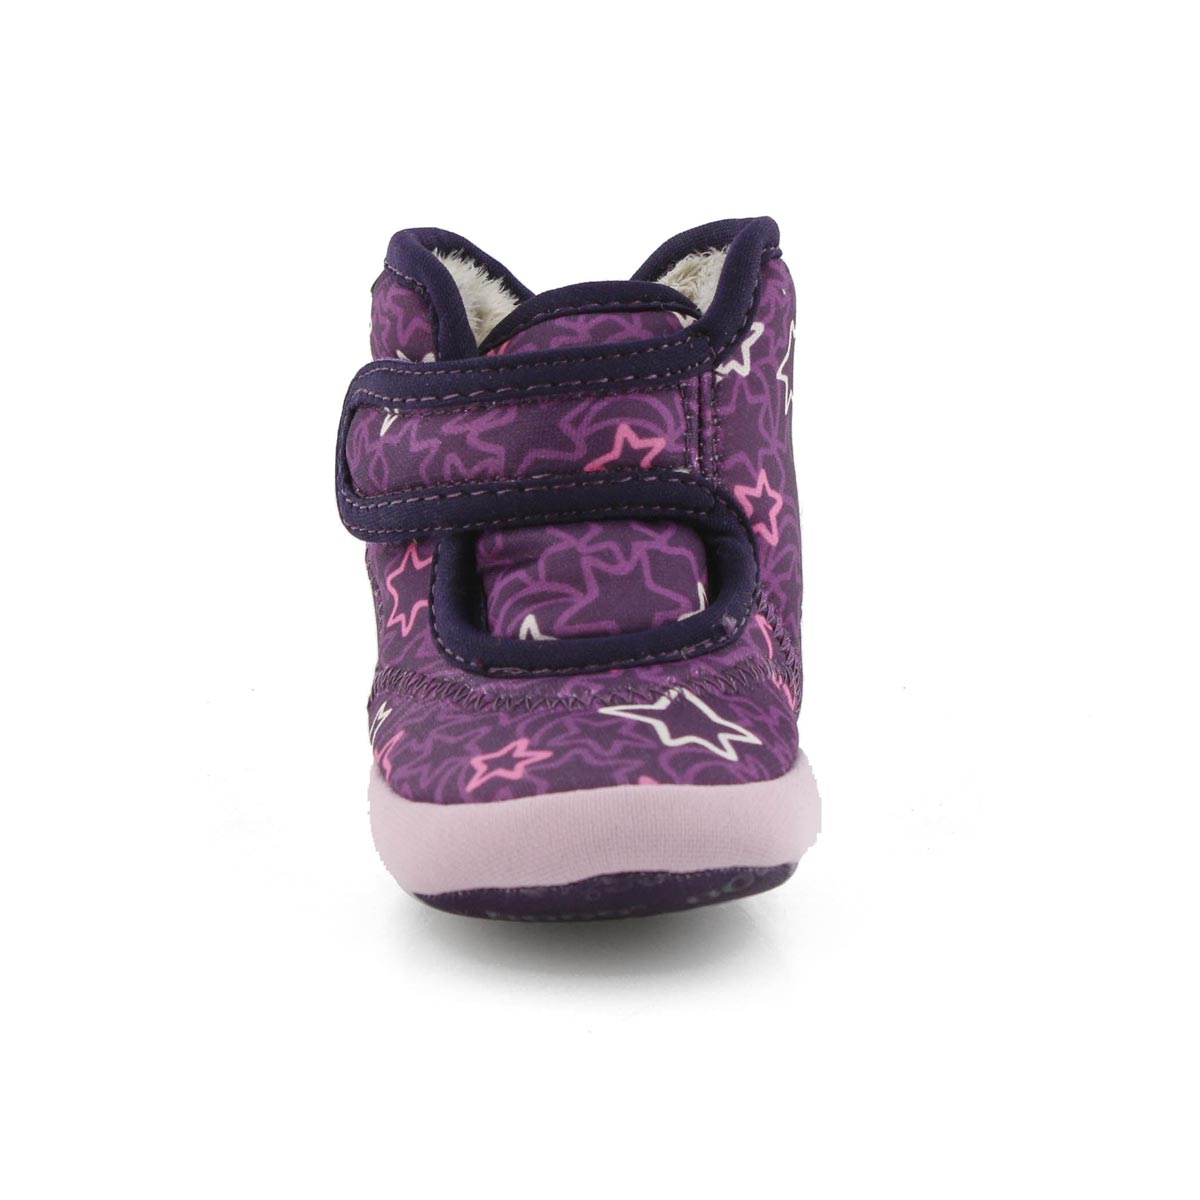 Infants' ELLIOT II NIGHTSKY purple multi boots